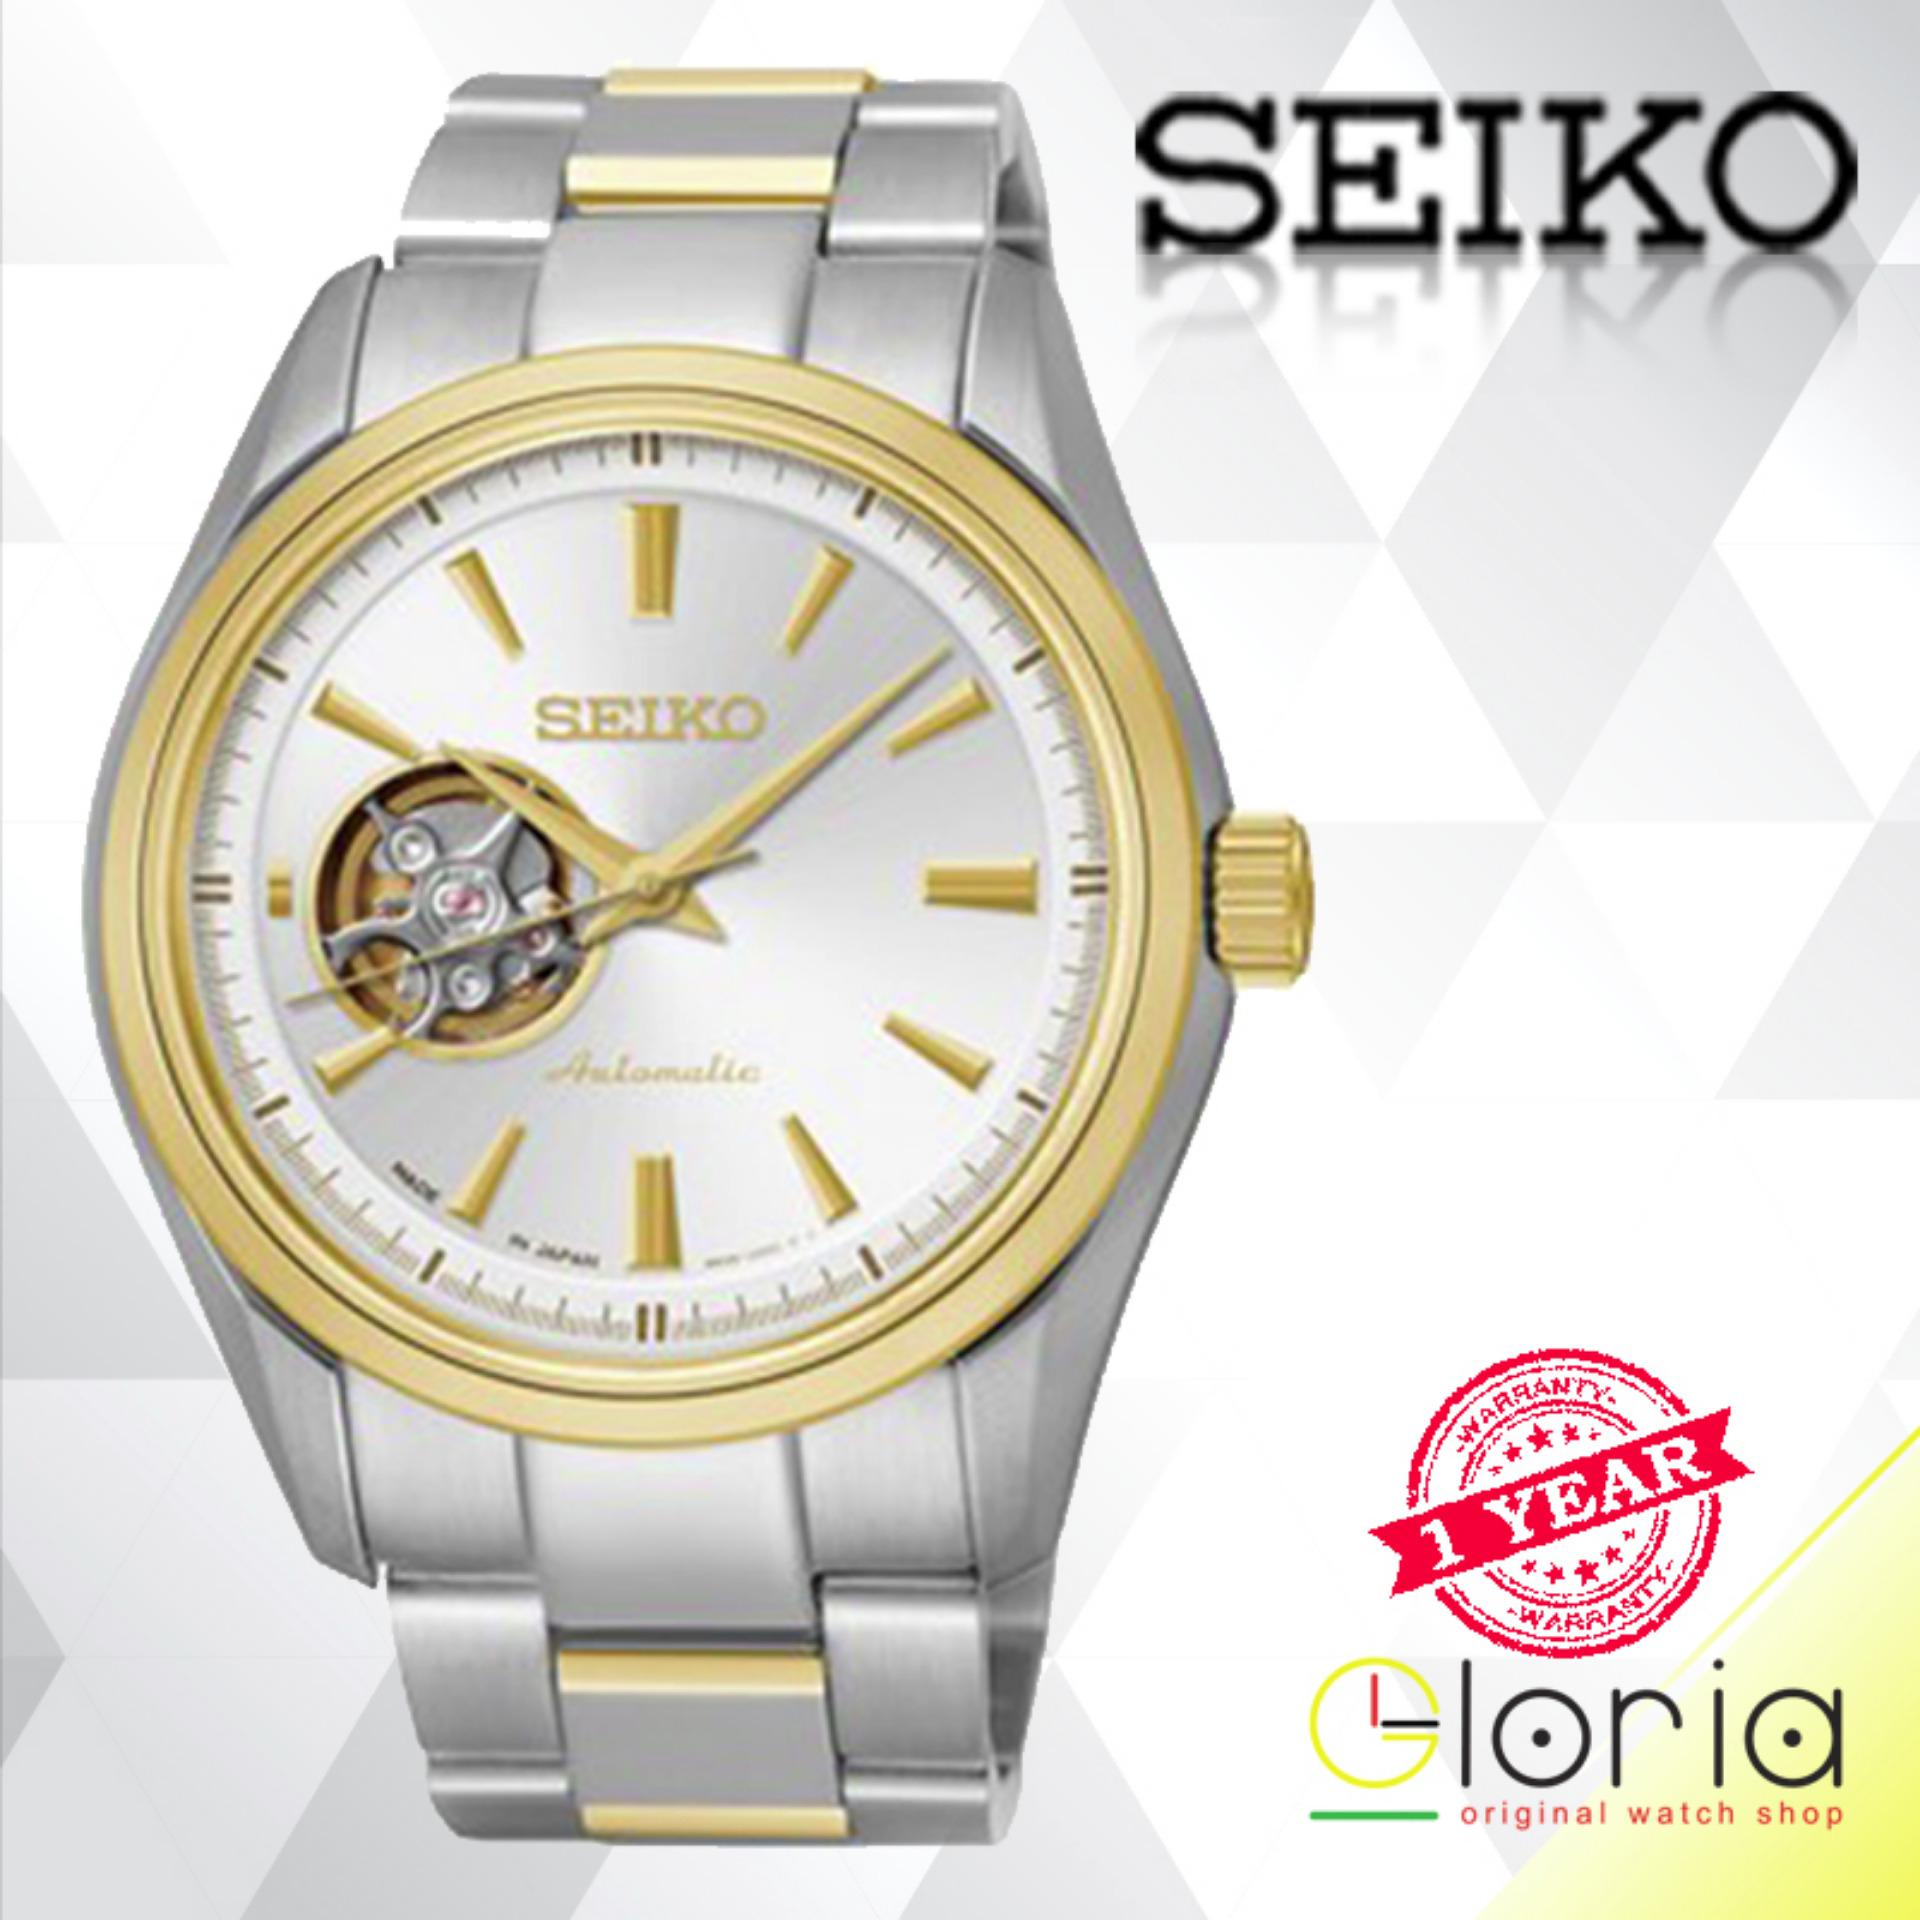 Seiko 5 Sports Jam Tangan Pria Hijau Strap Nylon Srp621k1 Daftar Sgee73p1 Stainless Steel Silver Prospex Marinemaster Hi Beat Limited Edition Sbex001 Source Sport Automatic Presage